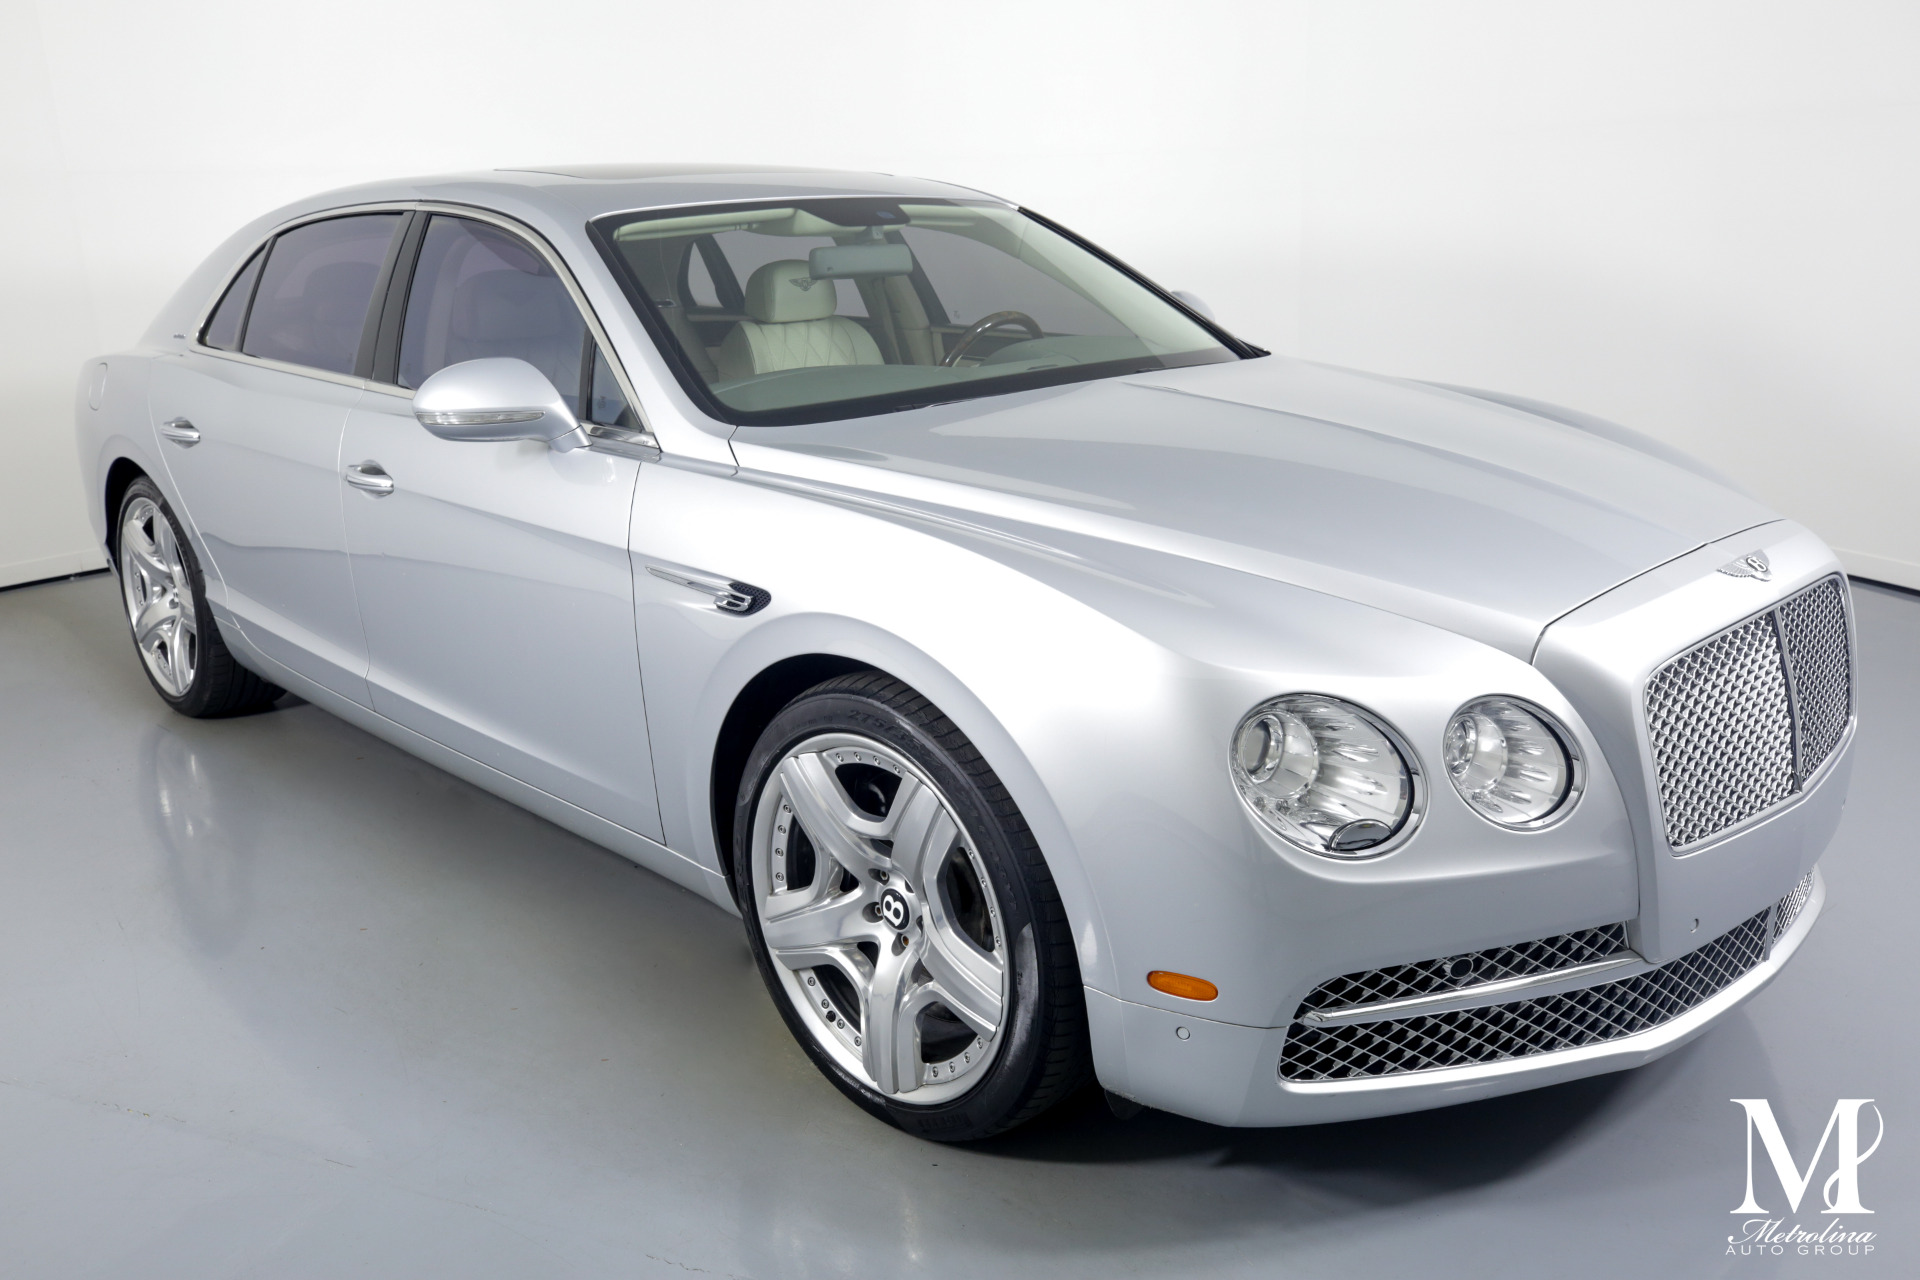 Used 2014 Bentley Flying Spur for sale $99,996 at Metrolina Auto Group in Charlotte NC 28217 - 2